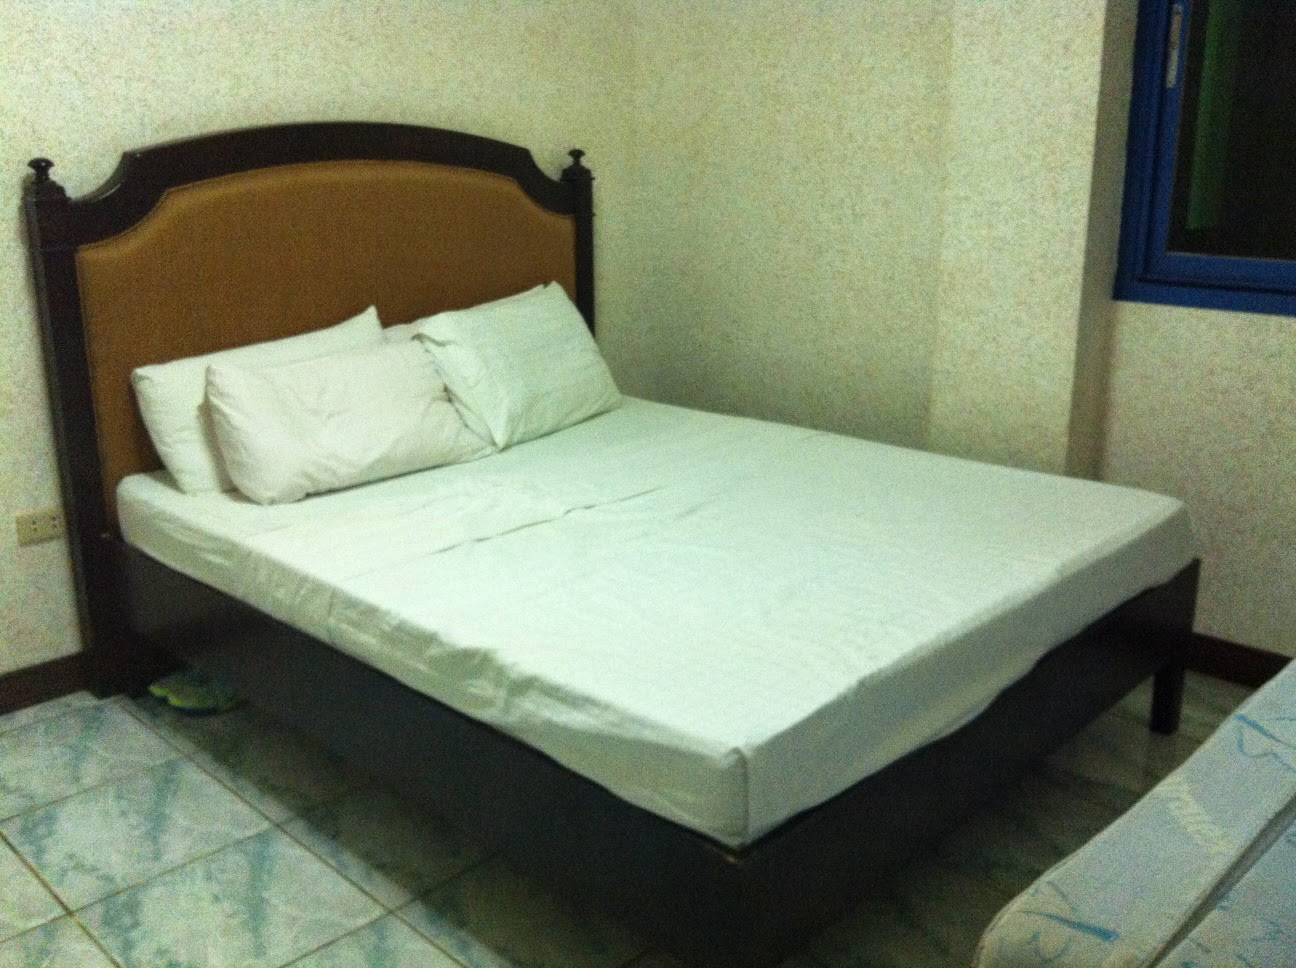 Inspirational The room is equipped with basic necessities such as an air conditioning unit closet cabinet vanity cabinet toilet with cold shower and conventional